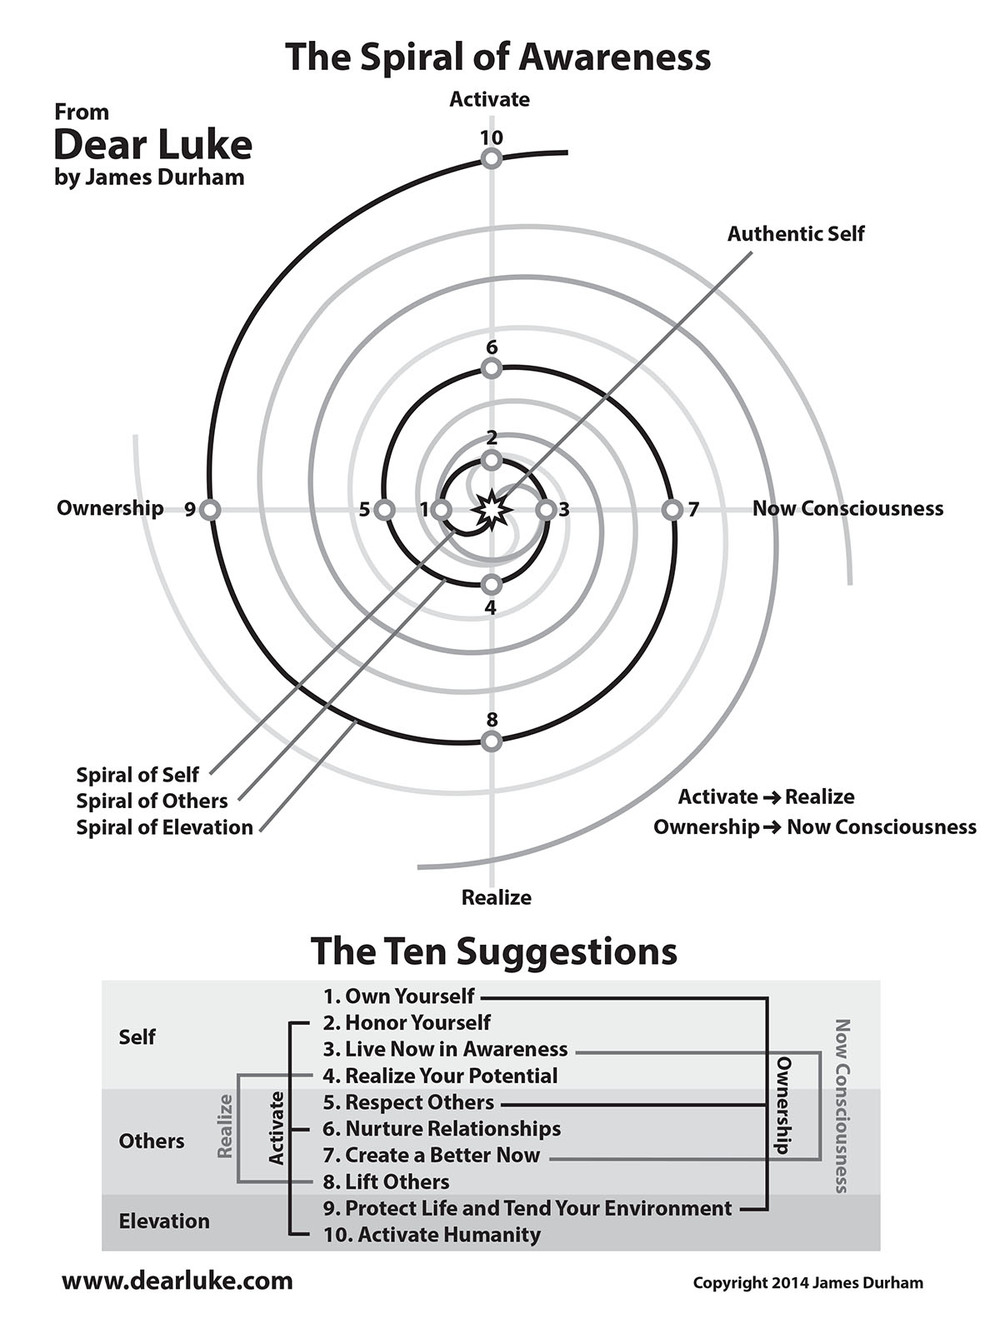 The Spiral of Awareness  and Its Relationship with The Ten Suggestions - From Dear Luke 16 - Click the image to view a larger version.